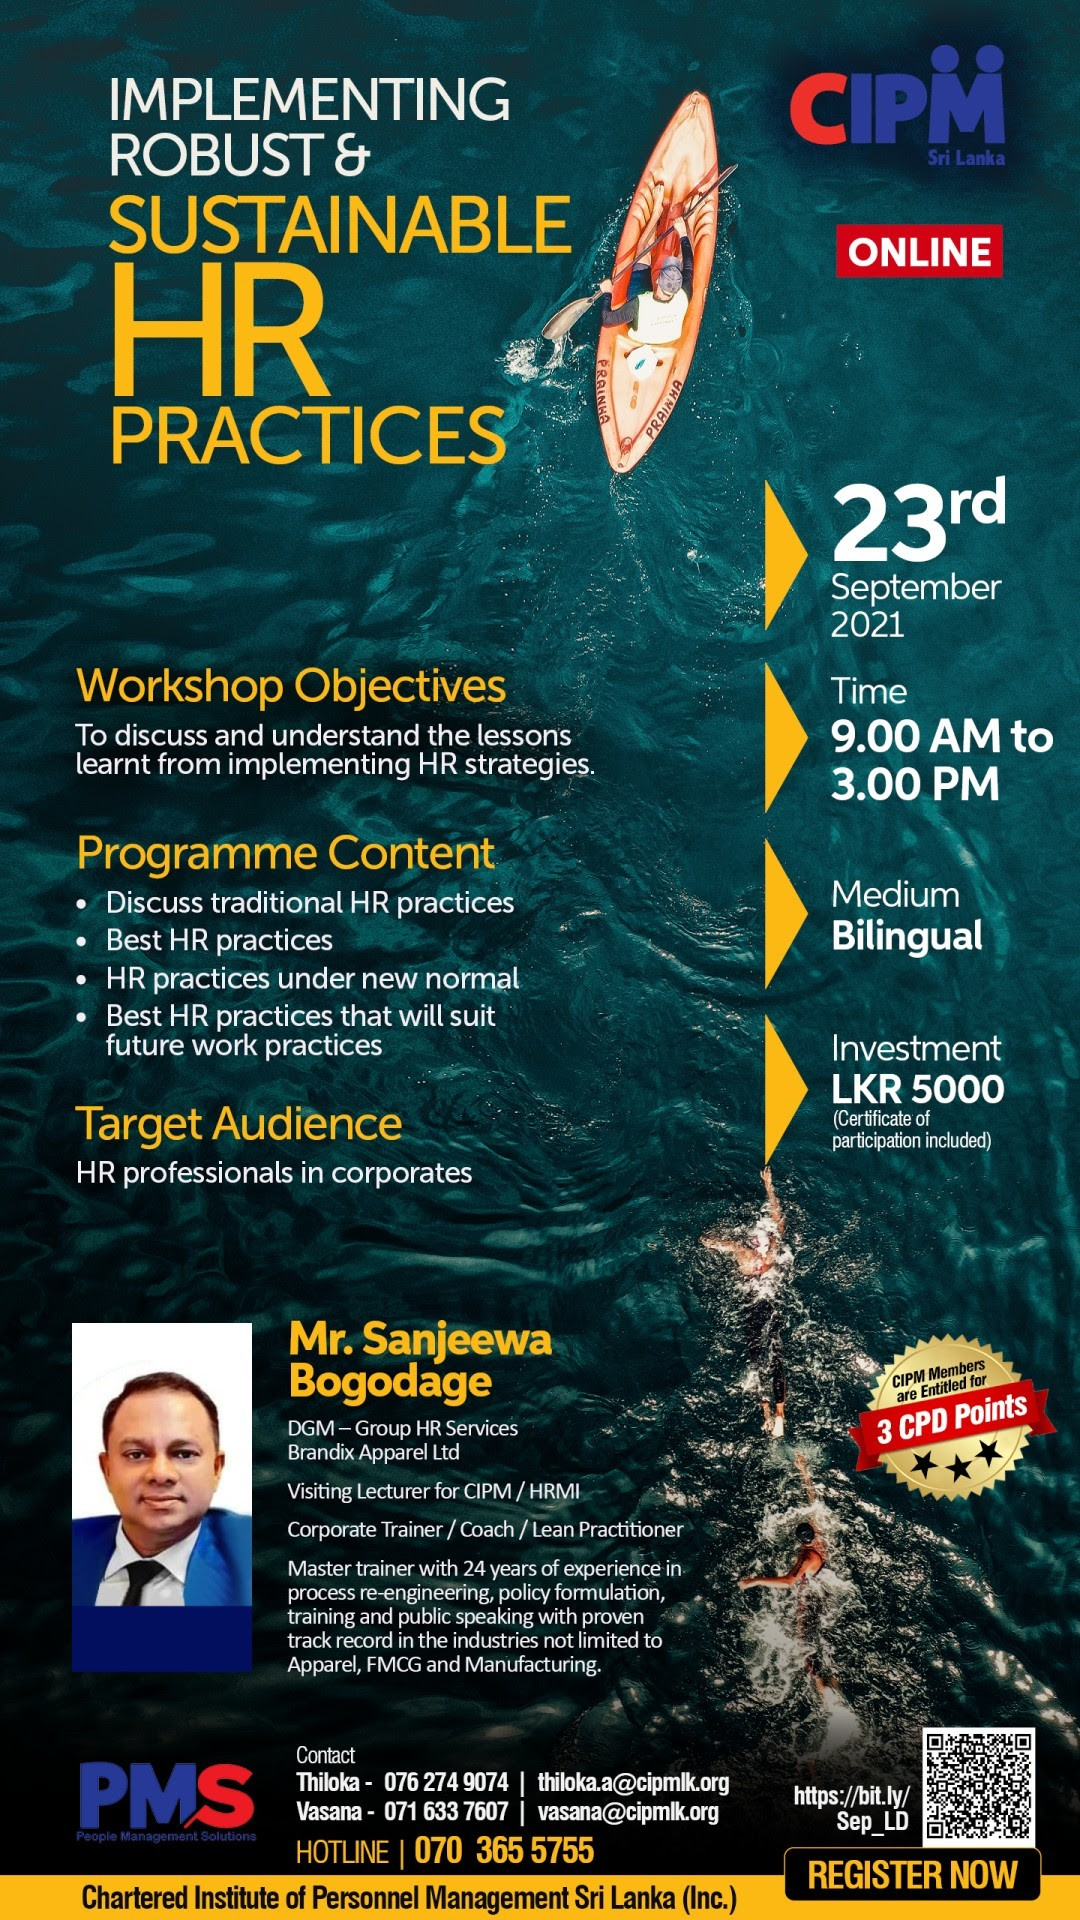 Implementing Robust & Sustainable HR Practices